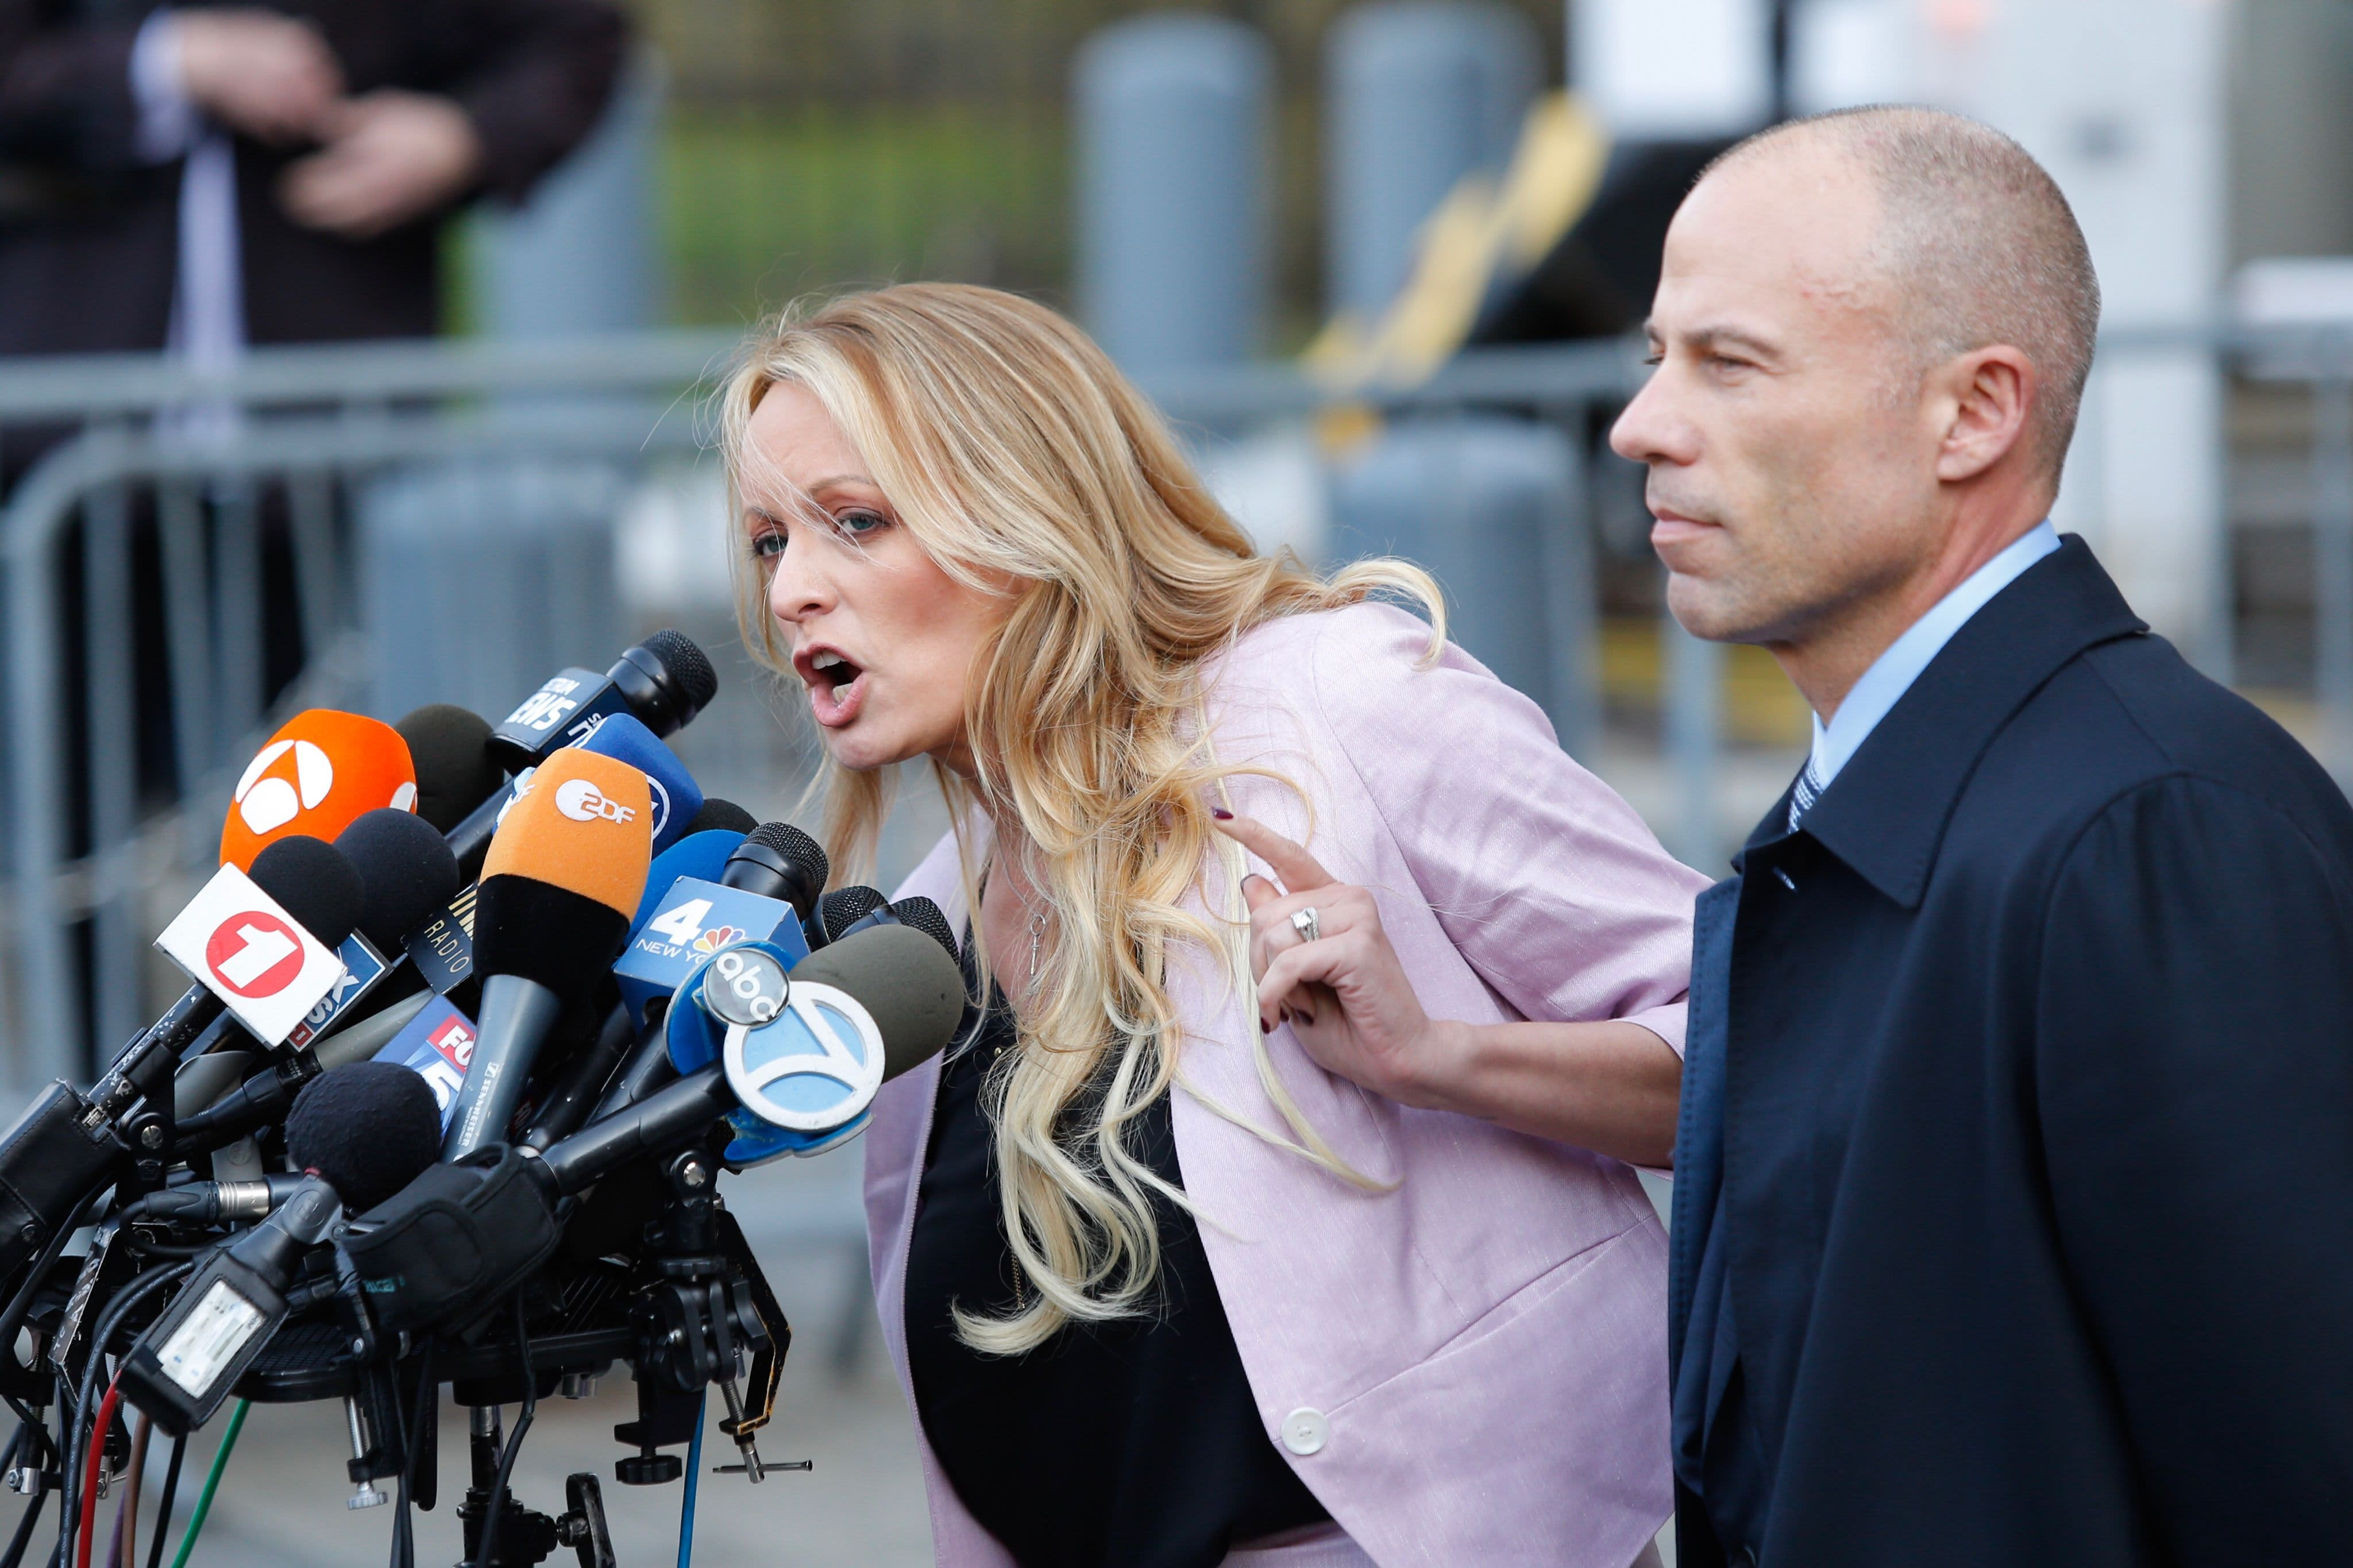 Adult-film actress Stephanie Clifford, also known as Stormy Daniels speaks US Federal Court with her lawyer Michael Avenatti (R) on April 16, 2018, in Lower Manhattan, New York.